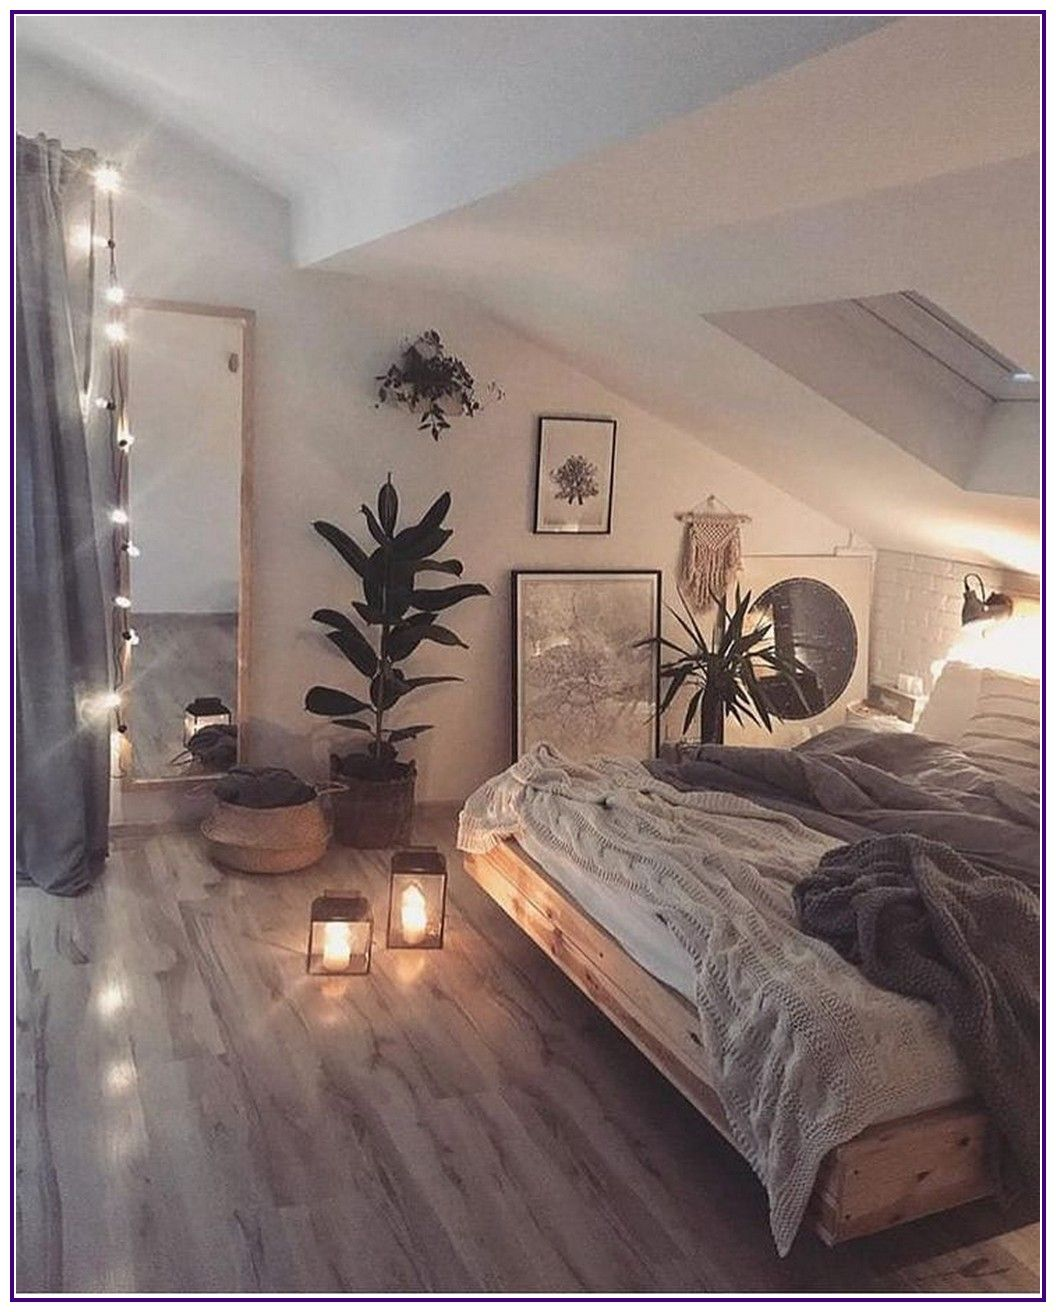 14 cozy decor ideas with bedroom string lights 00013 * aux-pays-des-fleurs.com